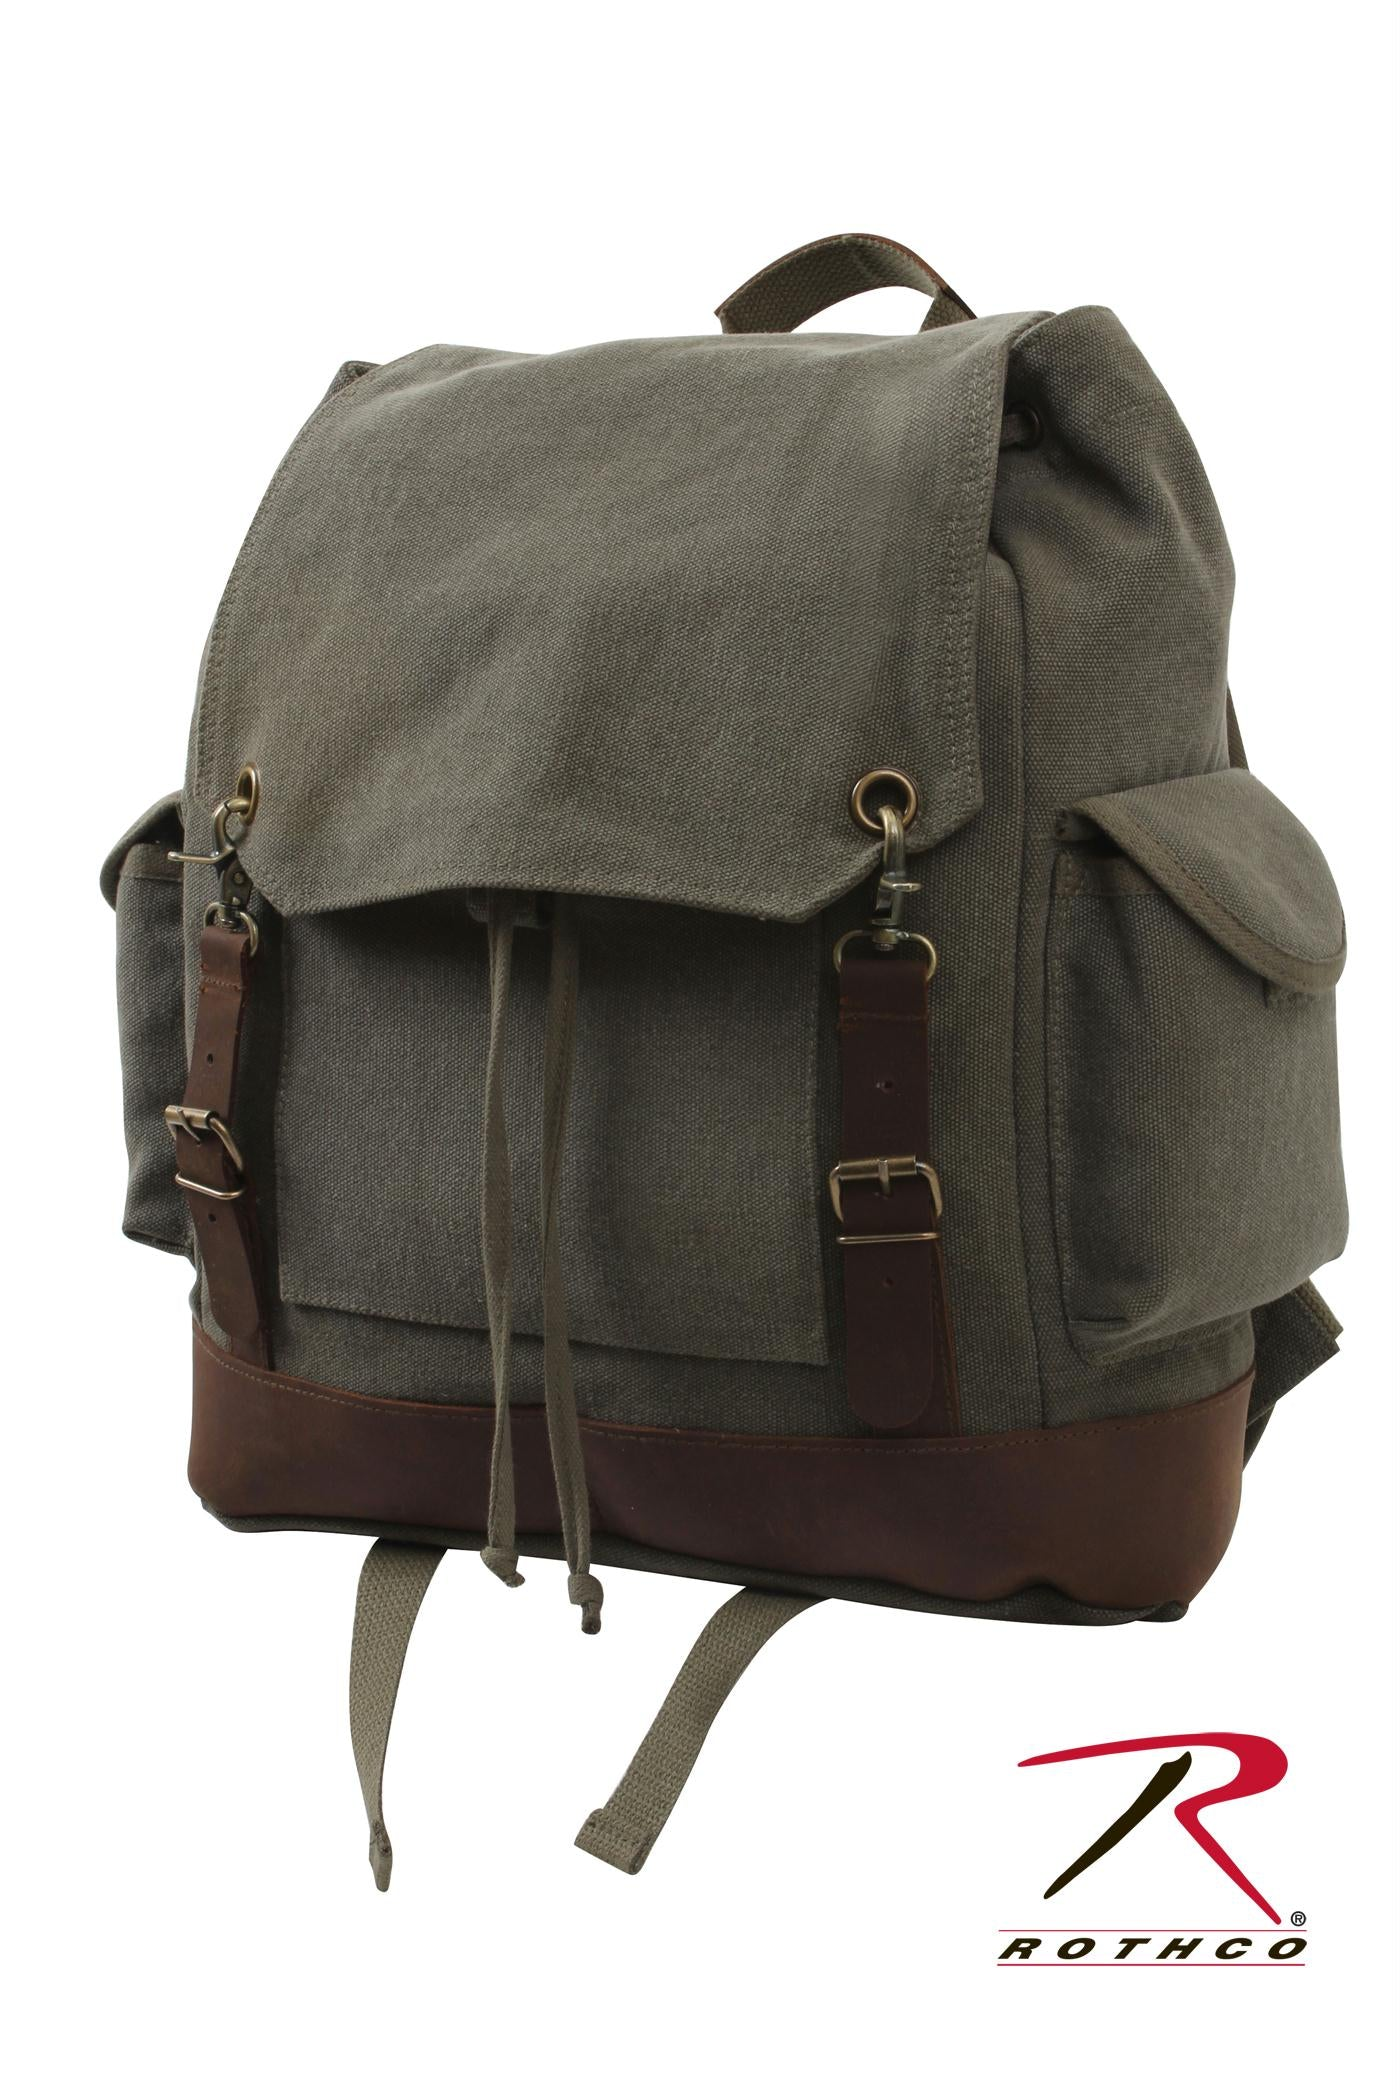 Rothco Vintage Expedition Rucksack - Olive Drab